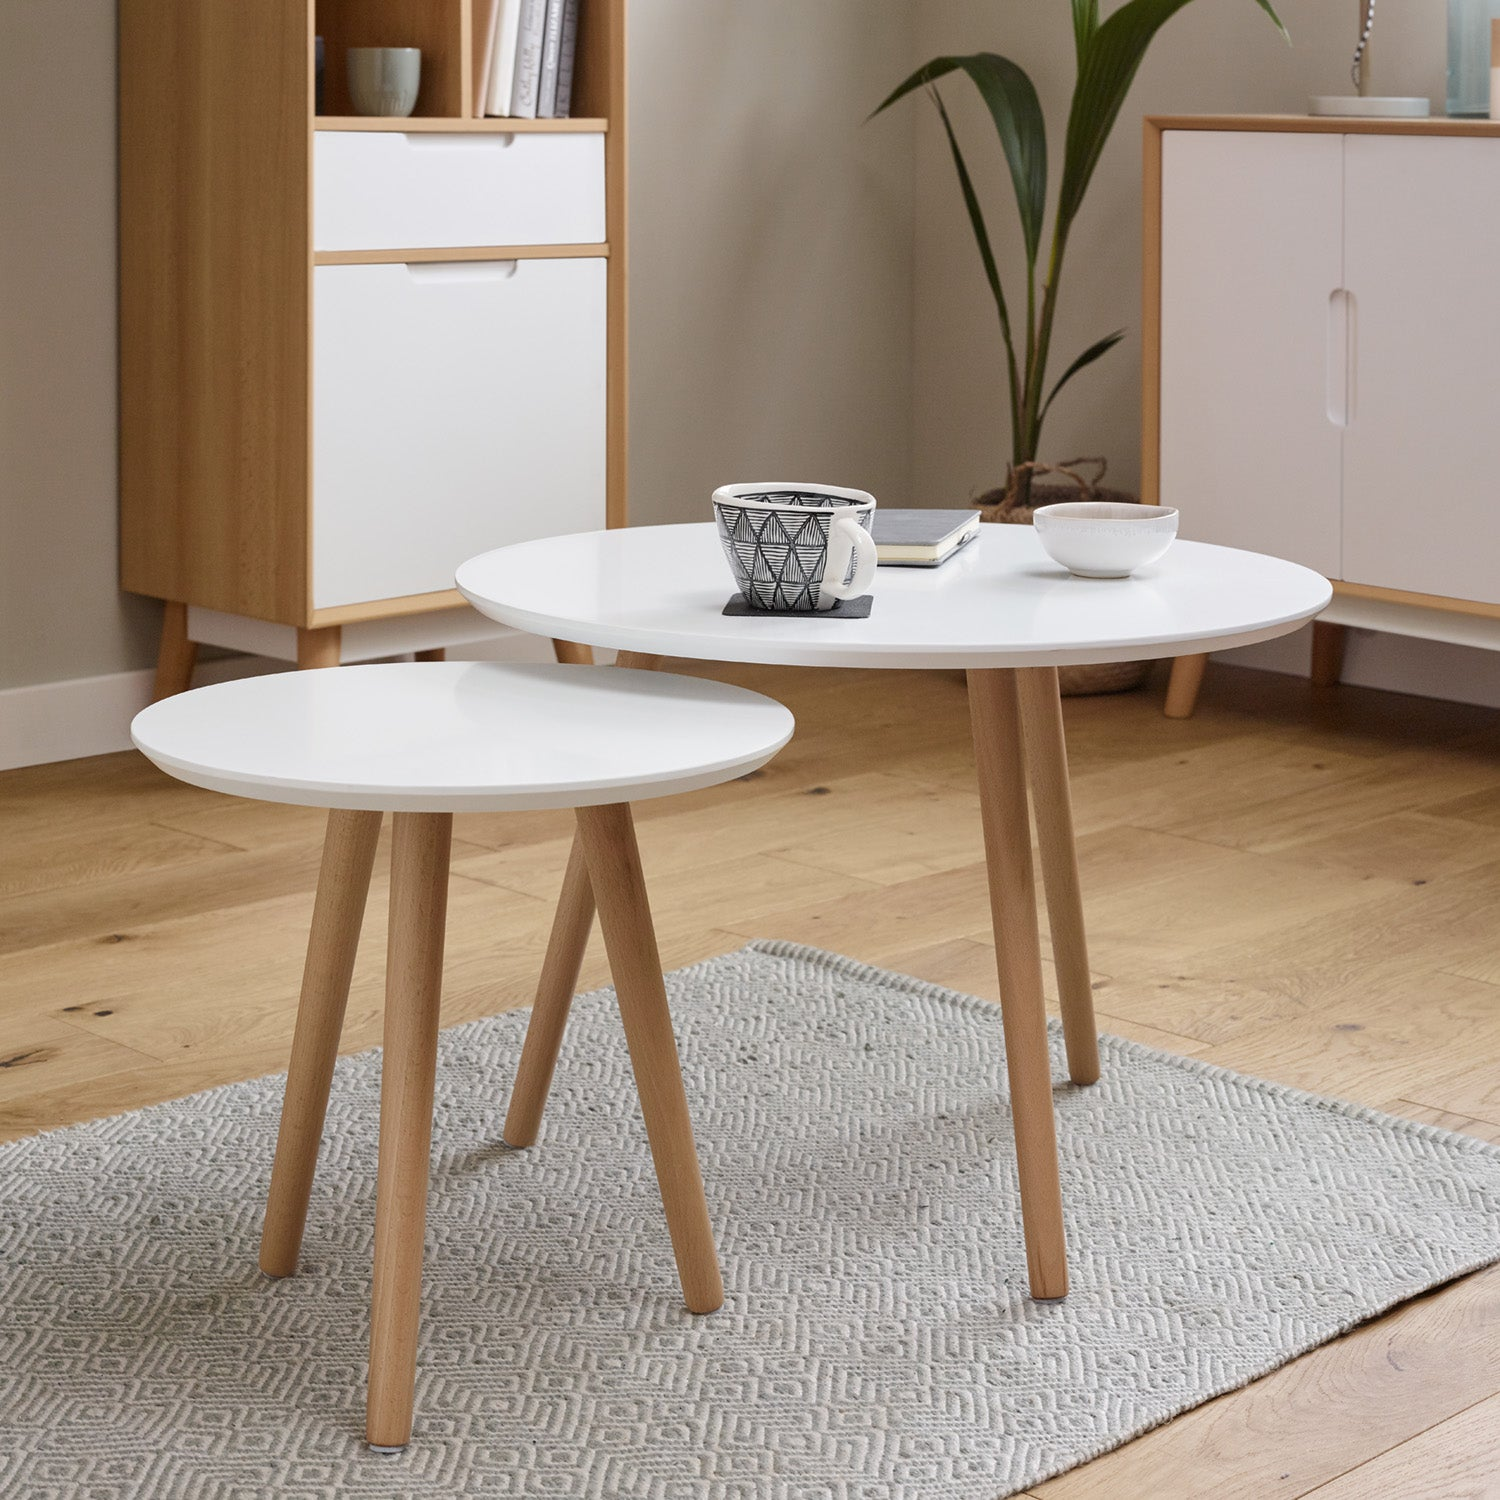 Hulra nest of tables - white - Laura James